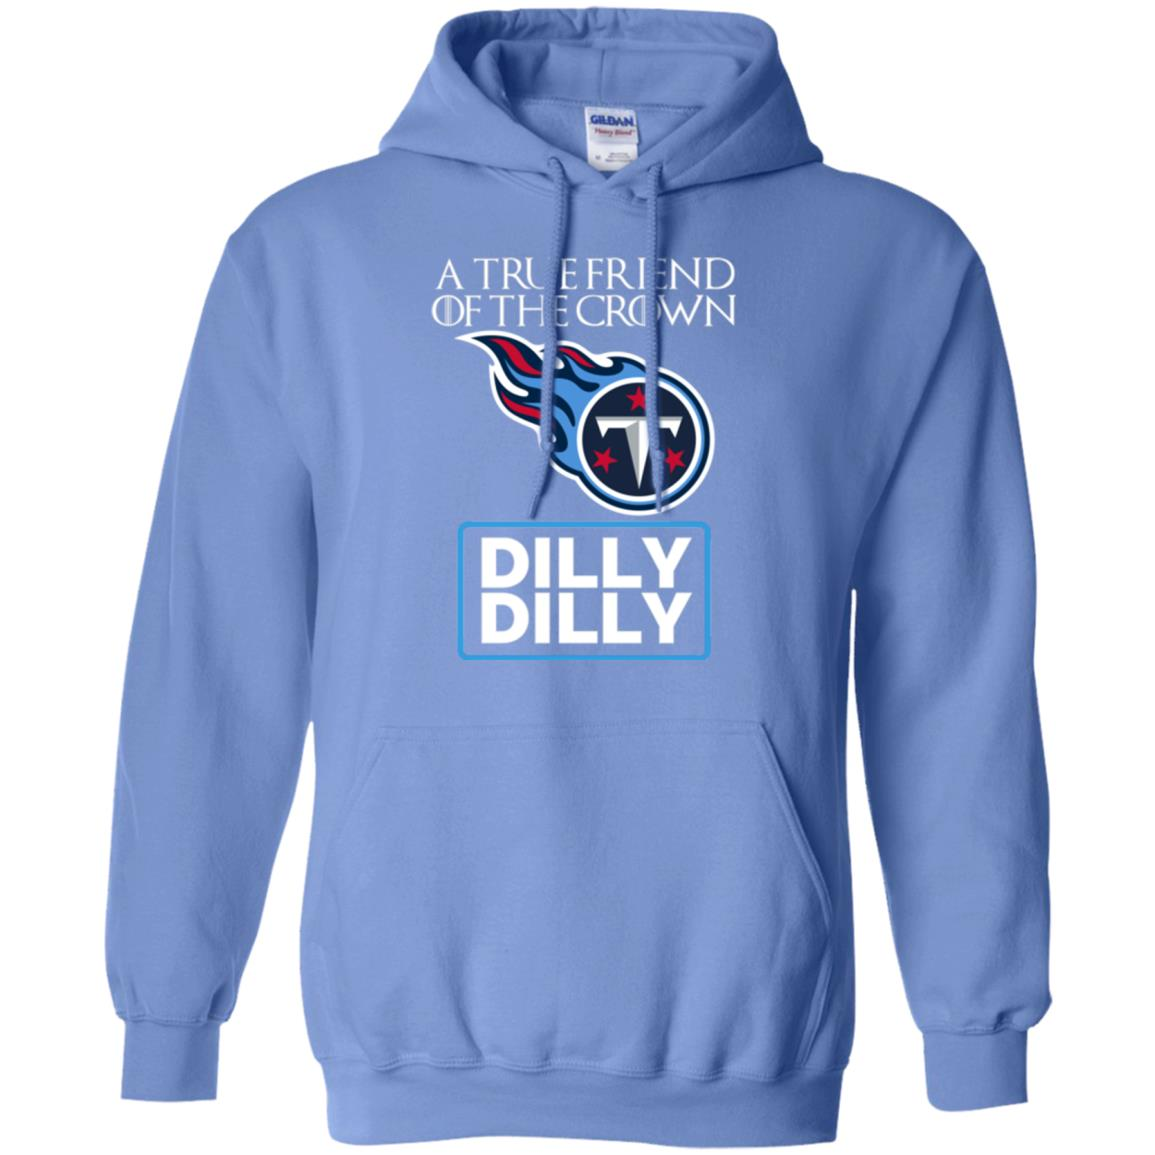 0f1f96949aff Dilly Dilly T-shirt Friend Of The Tennessee Titans King – DragonFlys ...